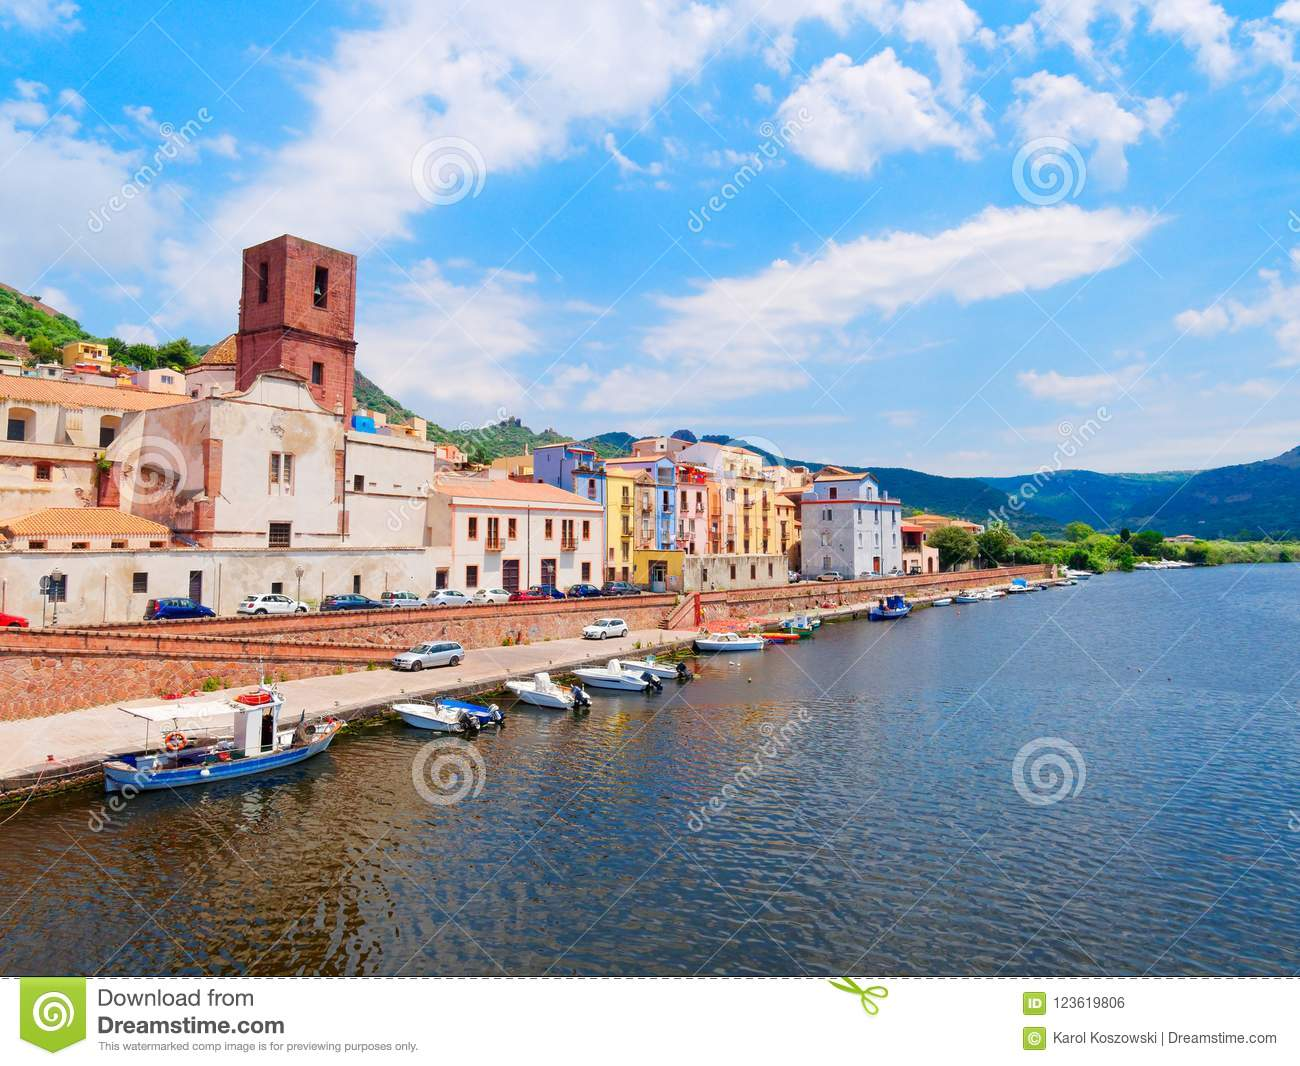 River embankment in the city of Bosa with colorful, typical Italian houses. province of Oristano, Sardinia, Italy.